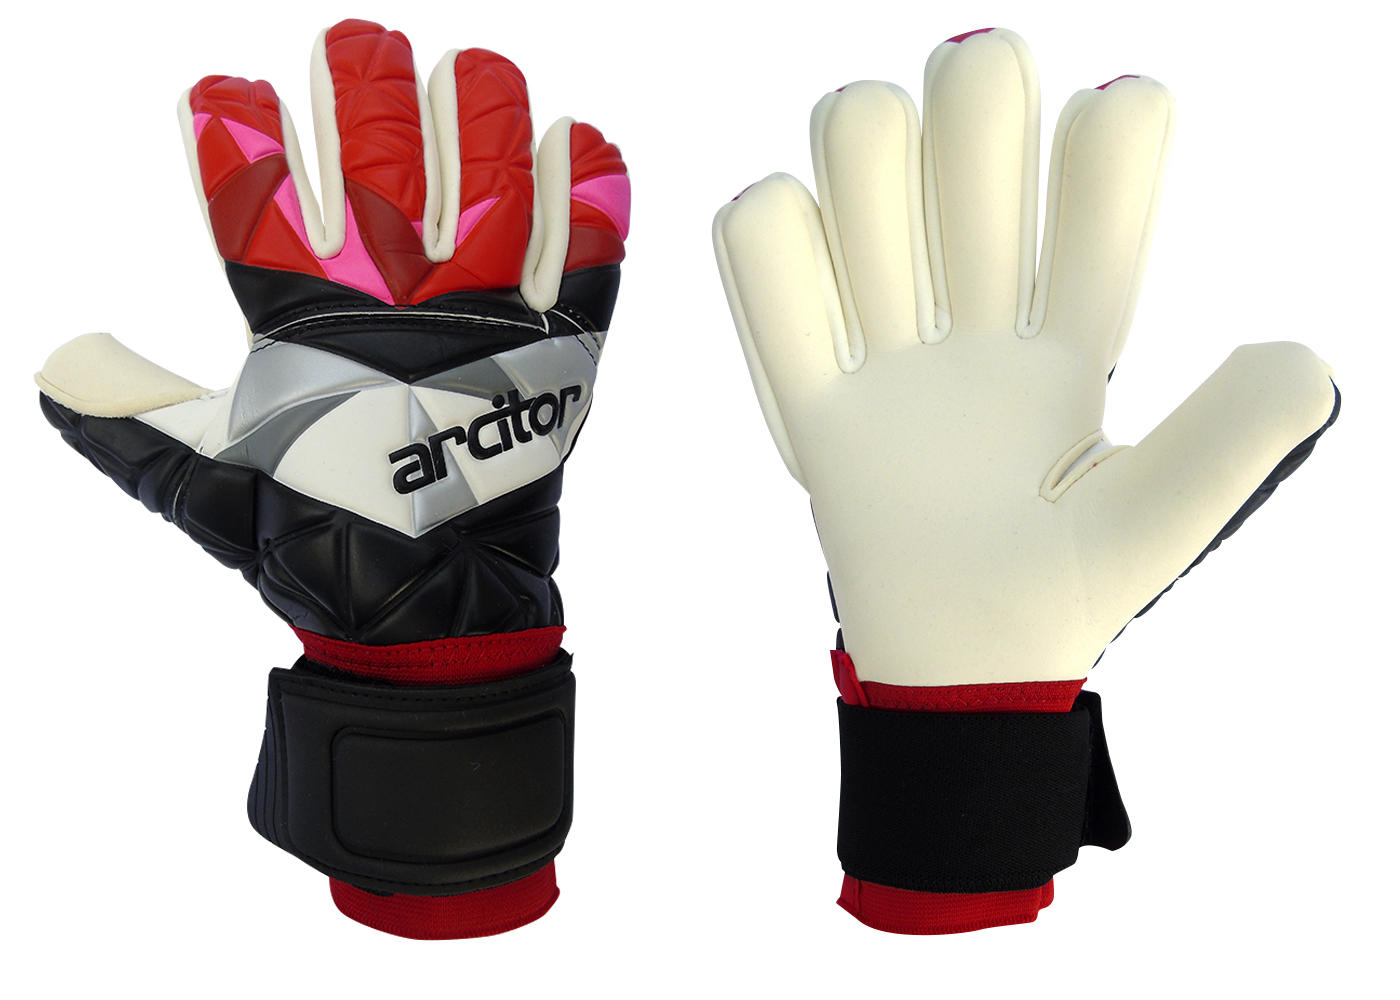 Black and red goalkeeping gloves